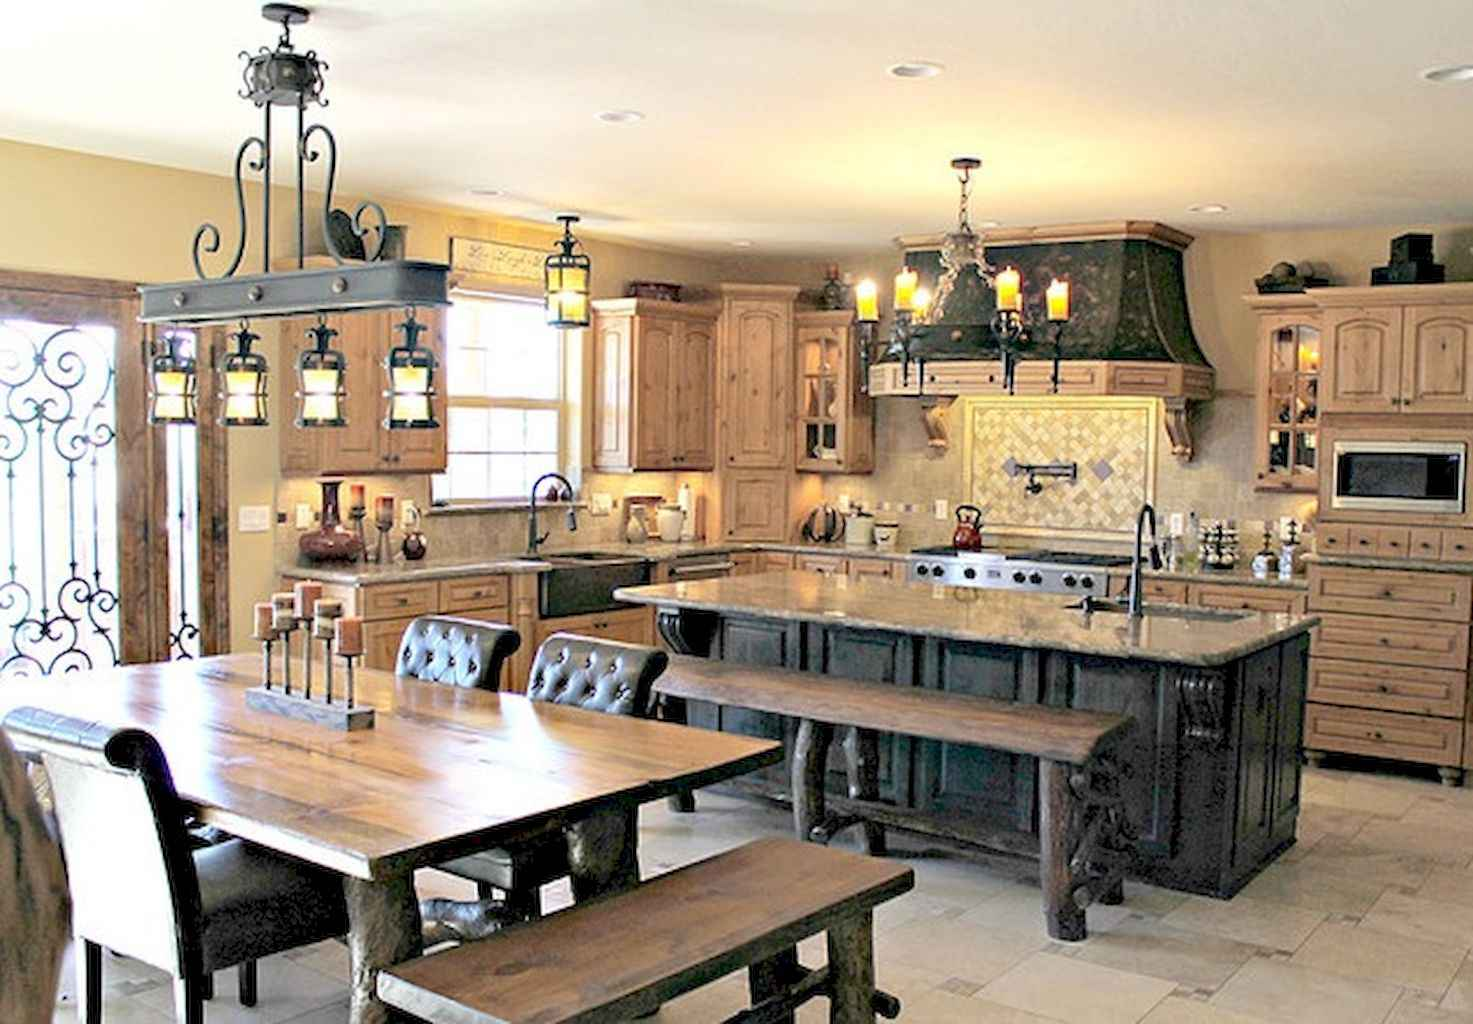 80 Modern Farmhouse Kitchen Lighting Decor Ideas and Remodel (58)